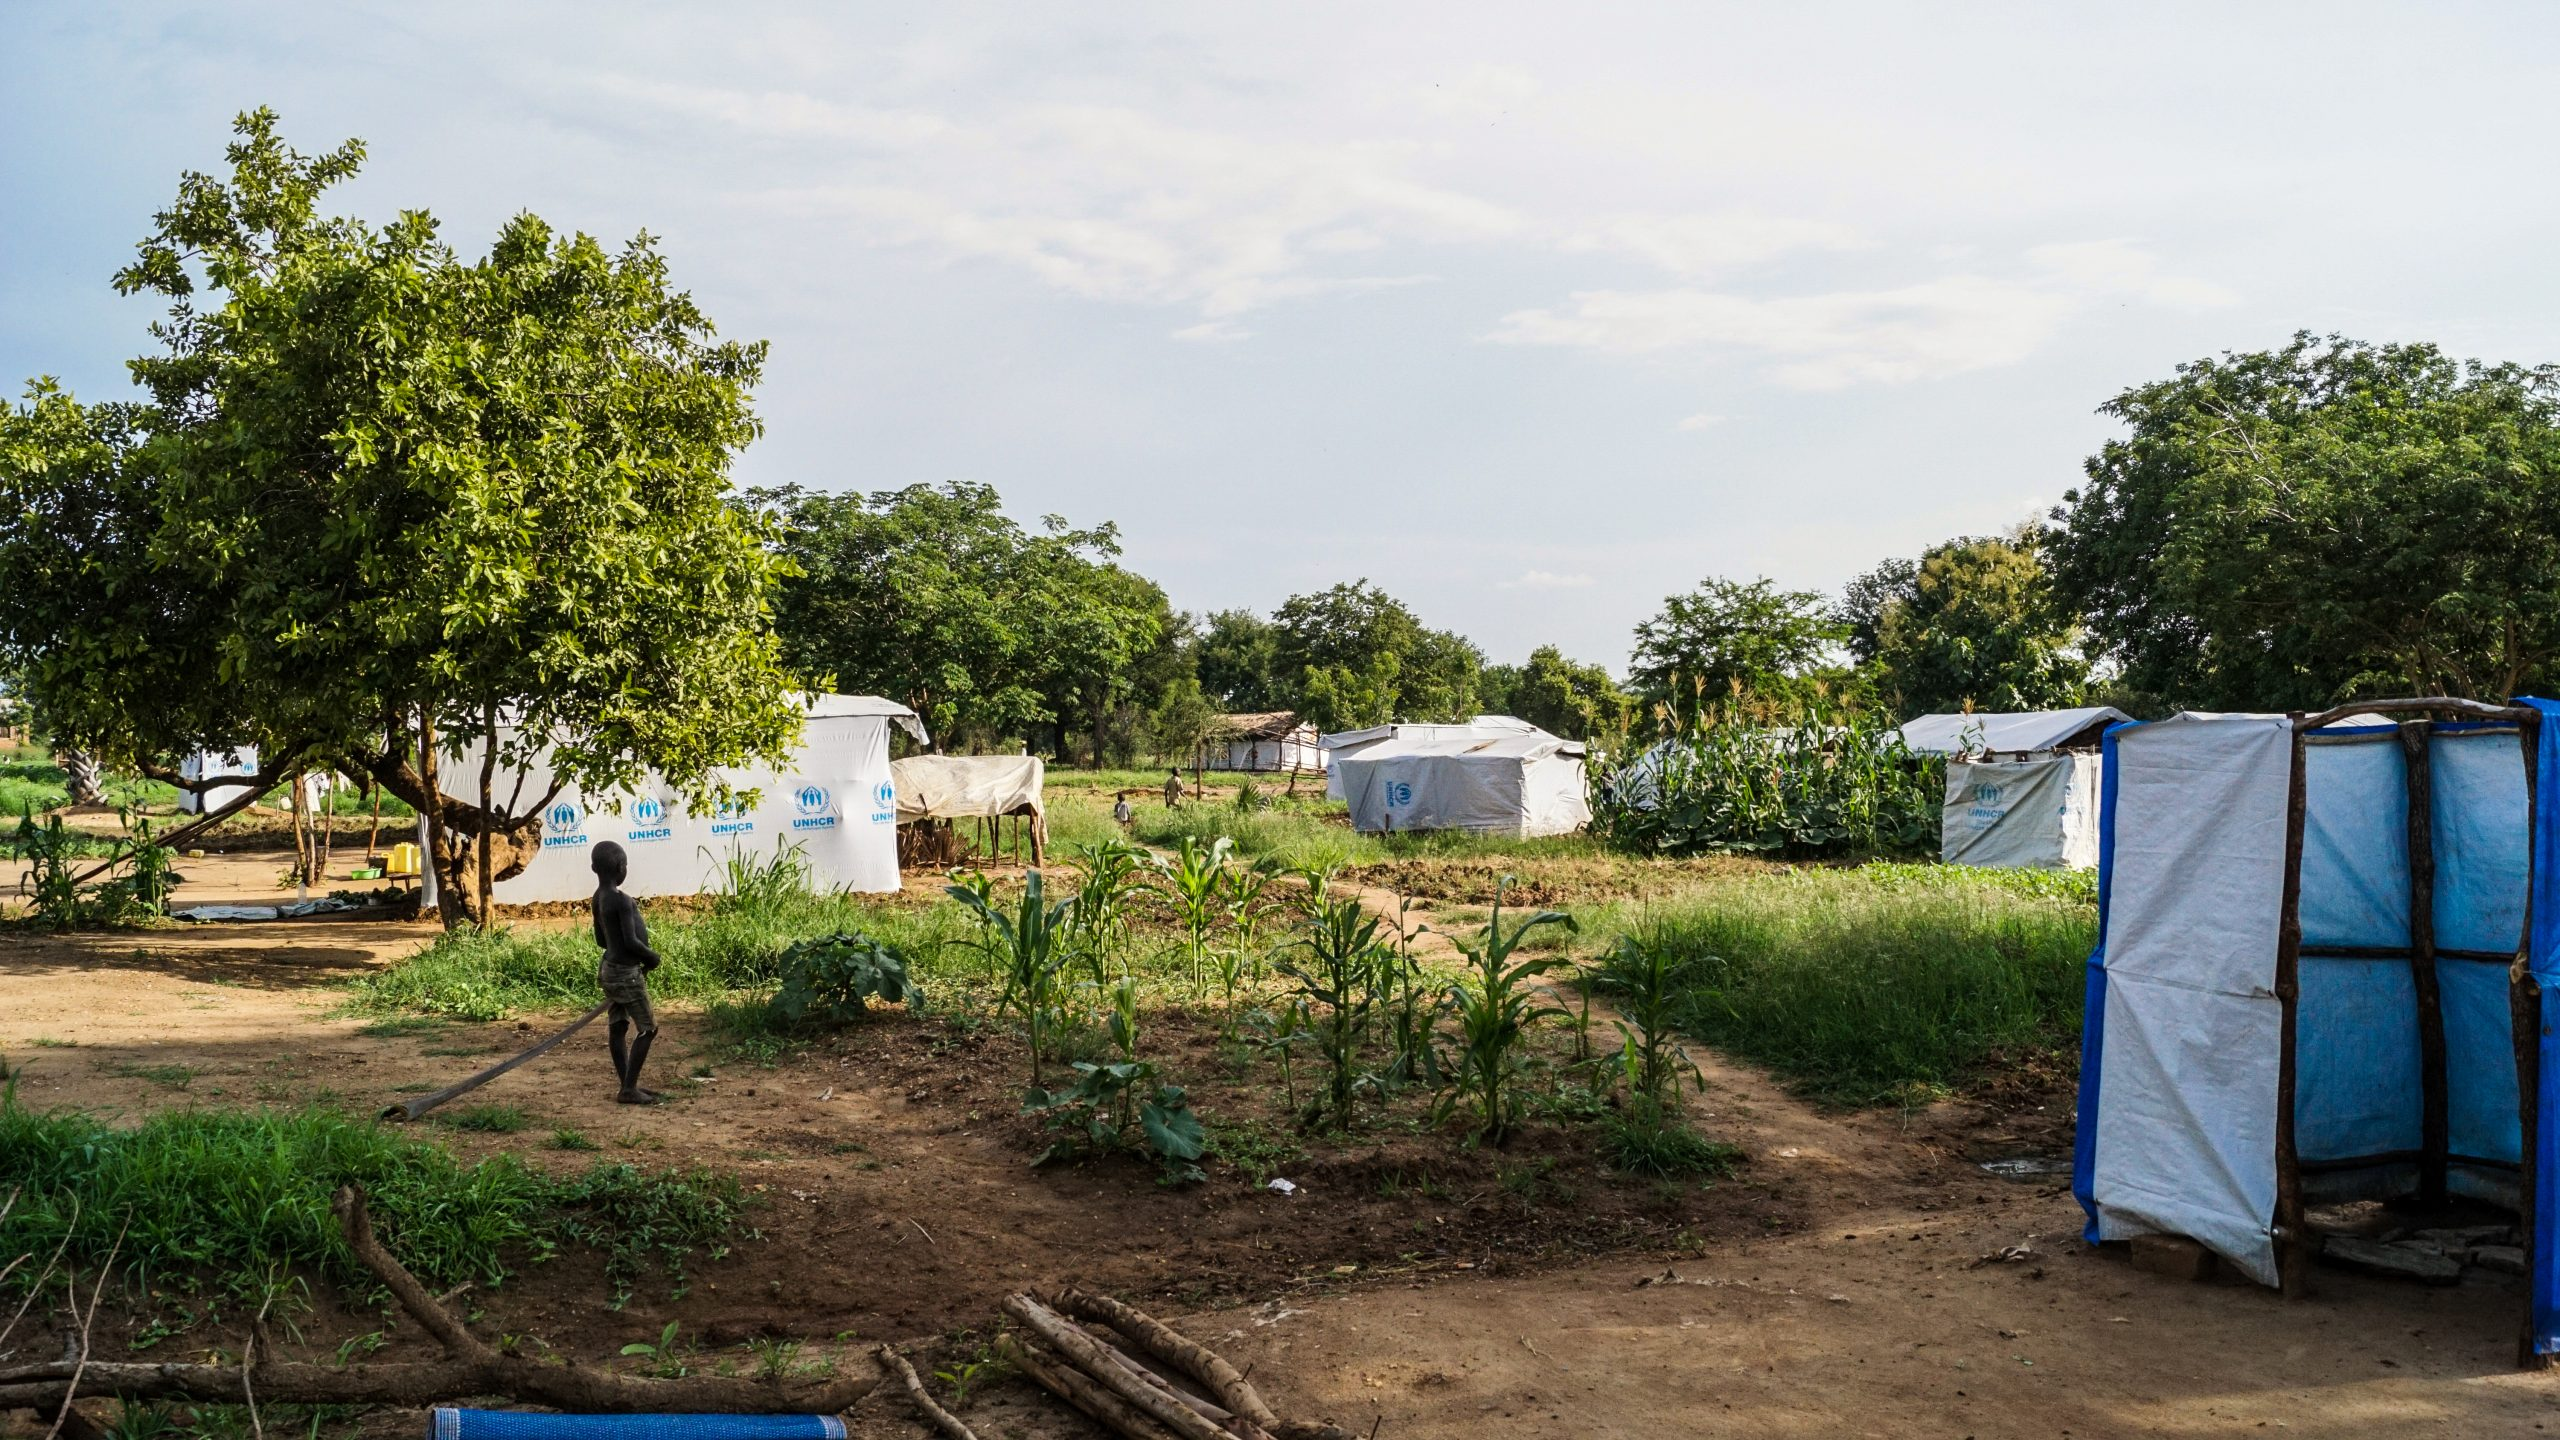 Village for South Sudanese refugees near the Imvepi Refugee Camp in northern Uganda